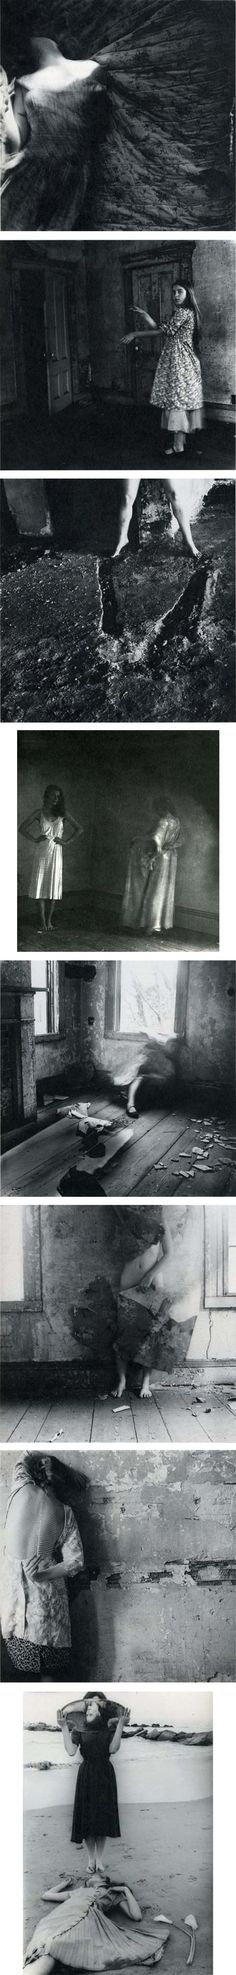 Francesca Woodman's photographs explore issues of gender and self, looking at the representation of the body in relation to its surroundings. She usually puts herself in the frame most often. These are not conventional self-portraits, since as she is either partially hidden, or concealed by slow exposures that blur her moving figure into a ghostly presence. This underlying fragility is emphasised by the small and intimate format of the photographs.